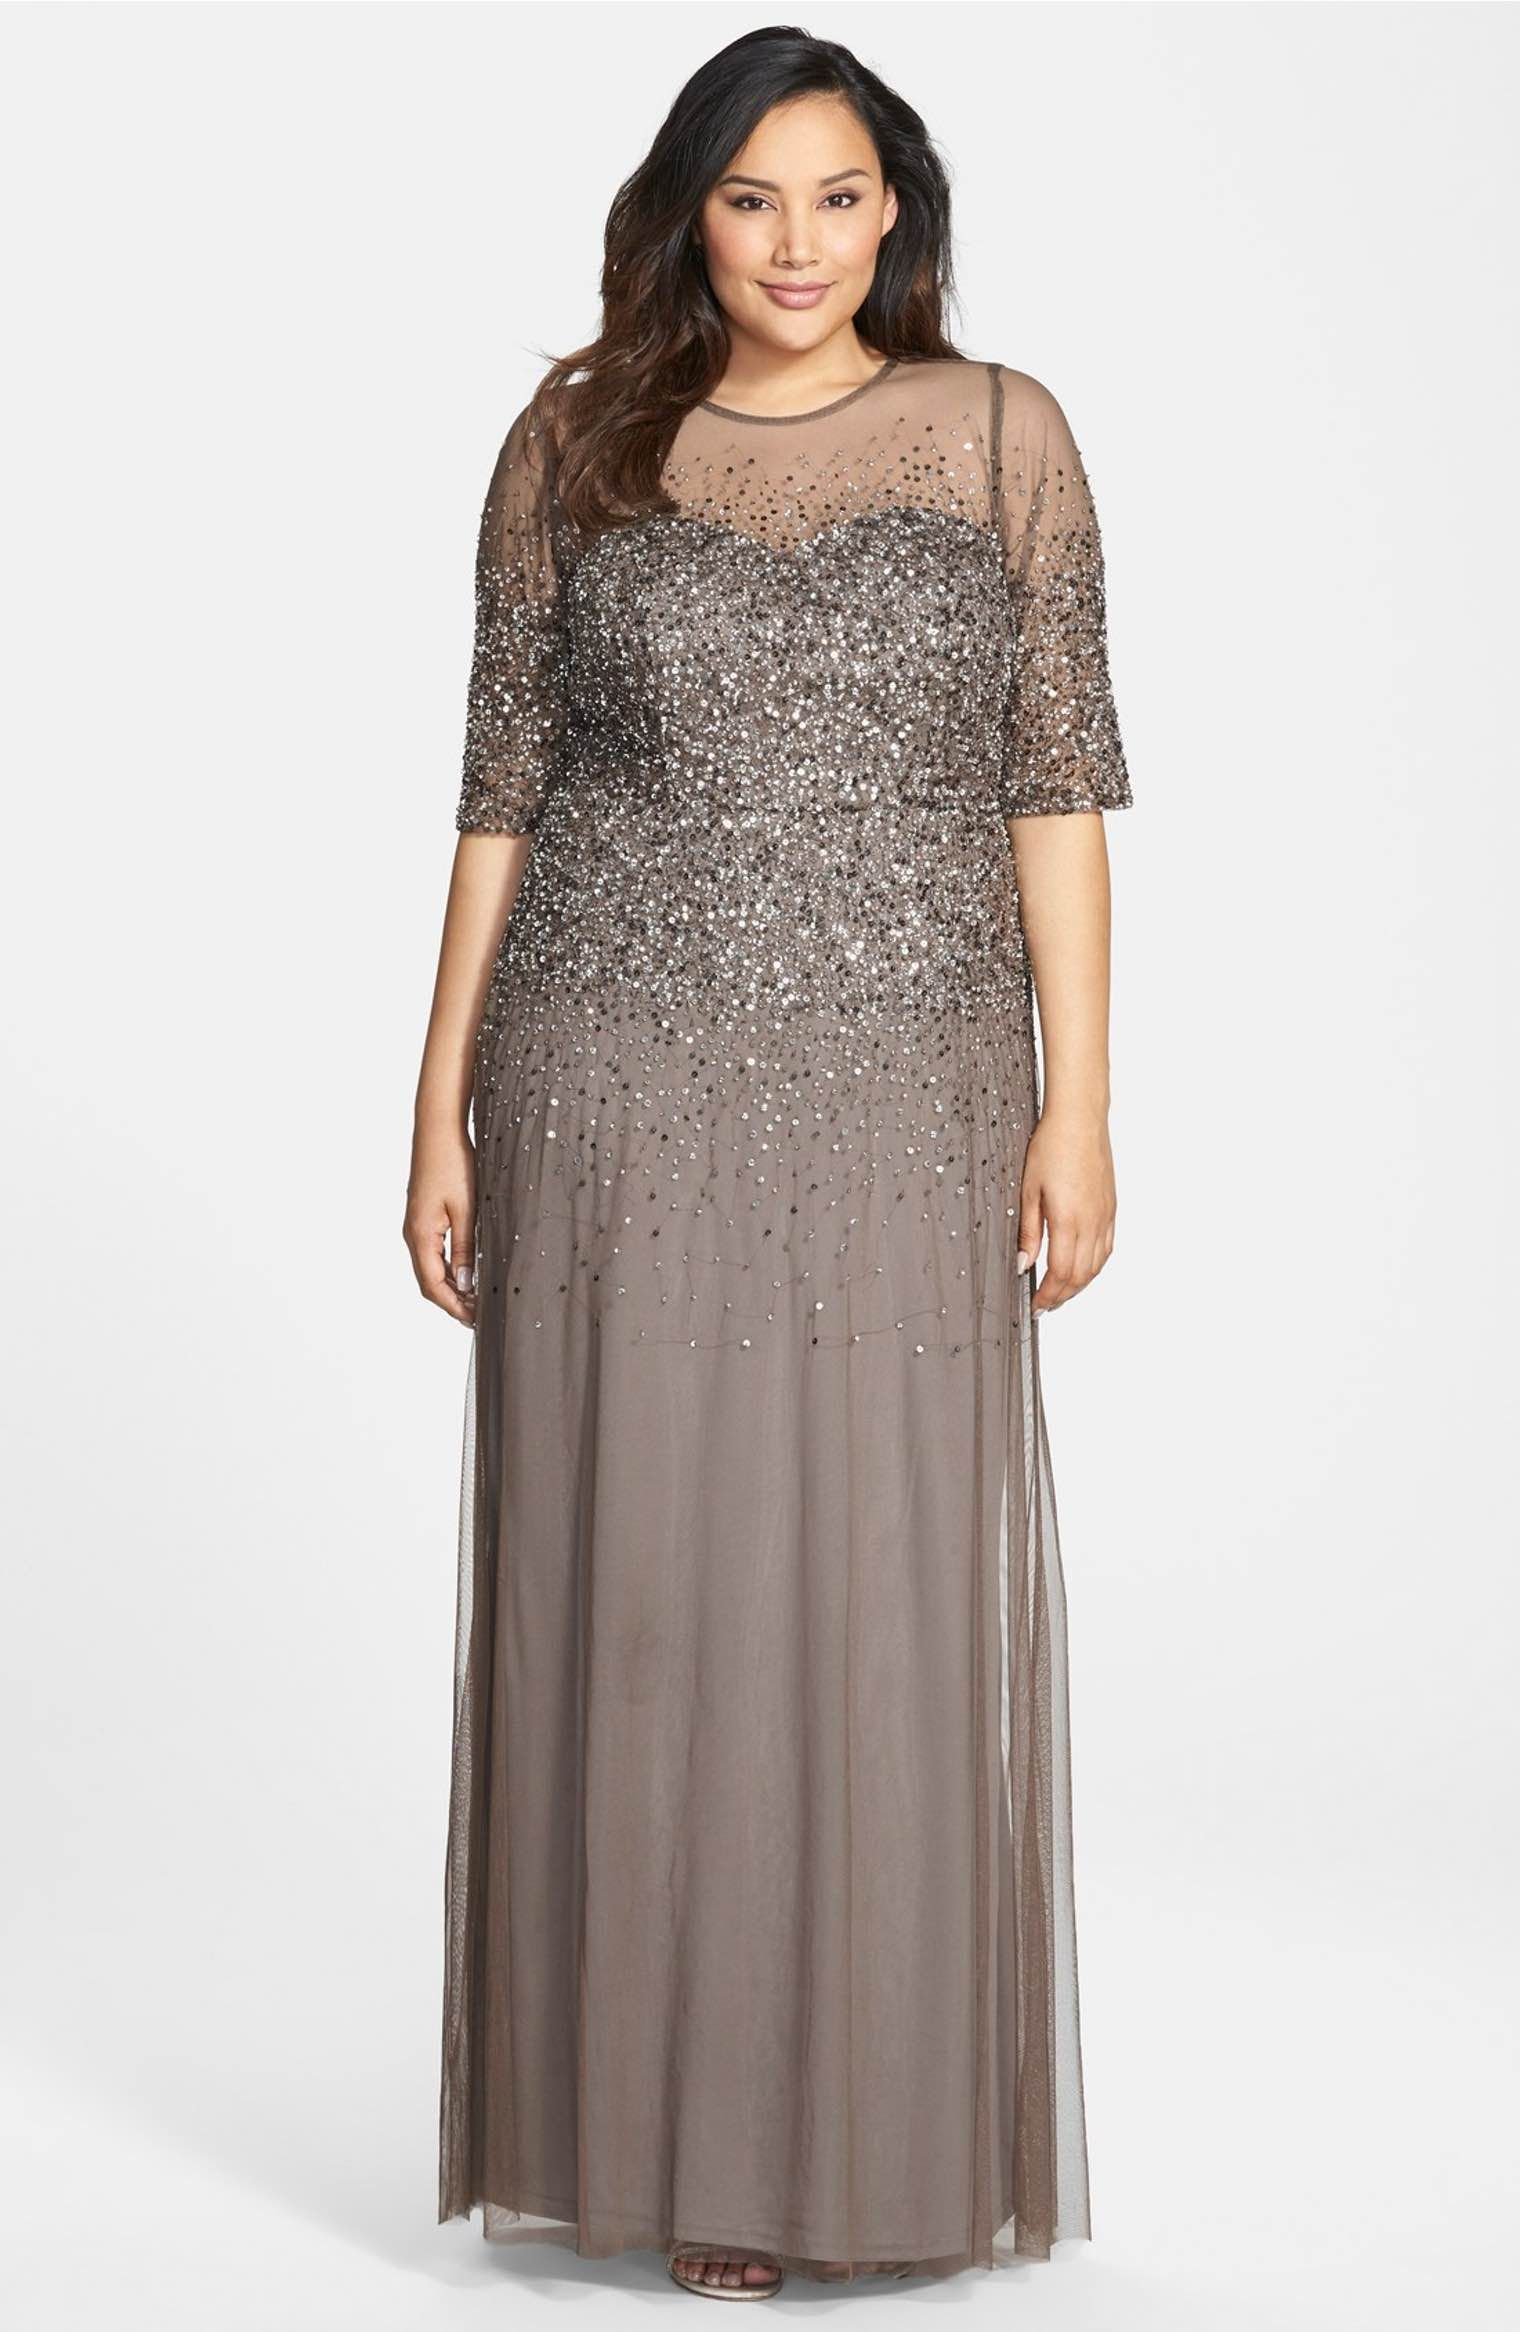 Adrianna Papell Beaded Illusion Gown Plus Size Nordstrom Plus Size Evening Gown Bridesmaid Dresses Plus Size Mother Of The Bride Plus Size [ 2332 x 1520 Pixel ]